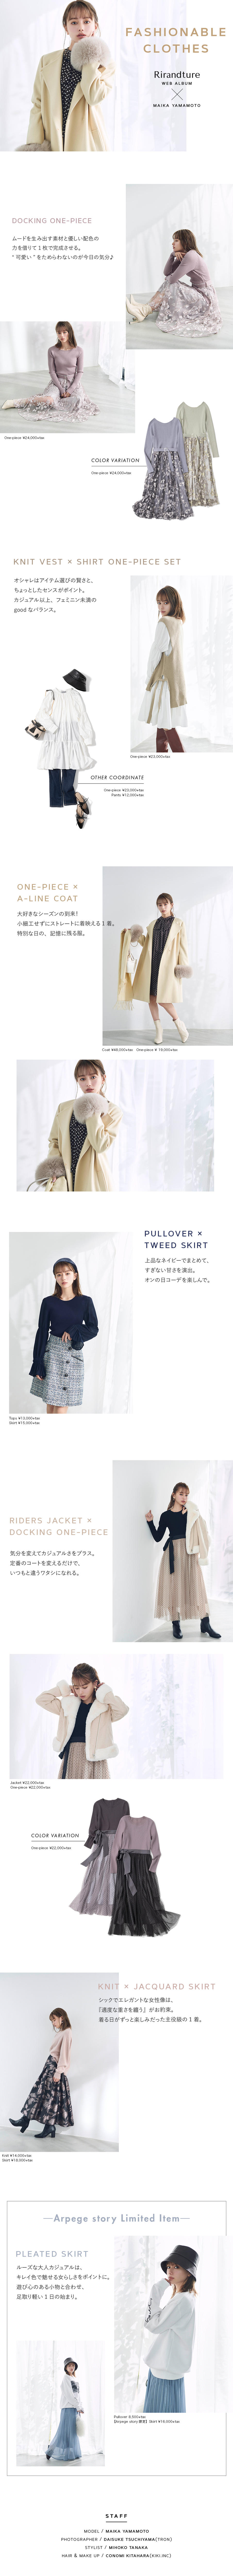 WEB ALBUM vol.56 - Rirandture × 山本舞香